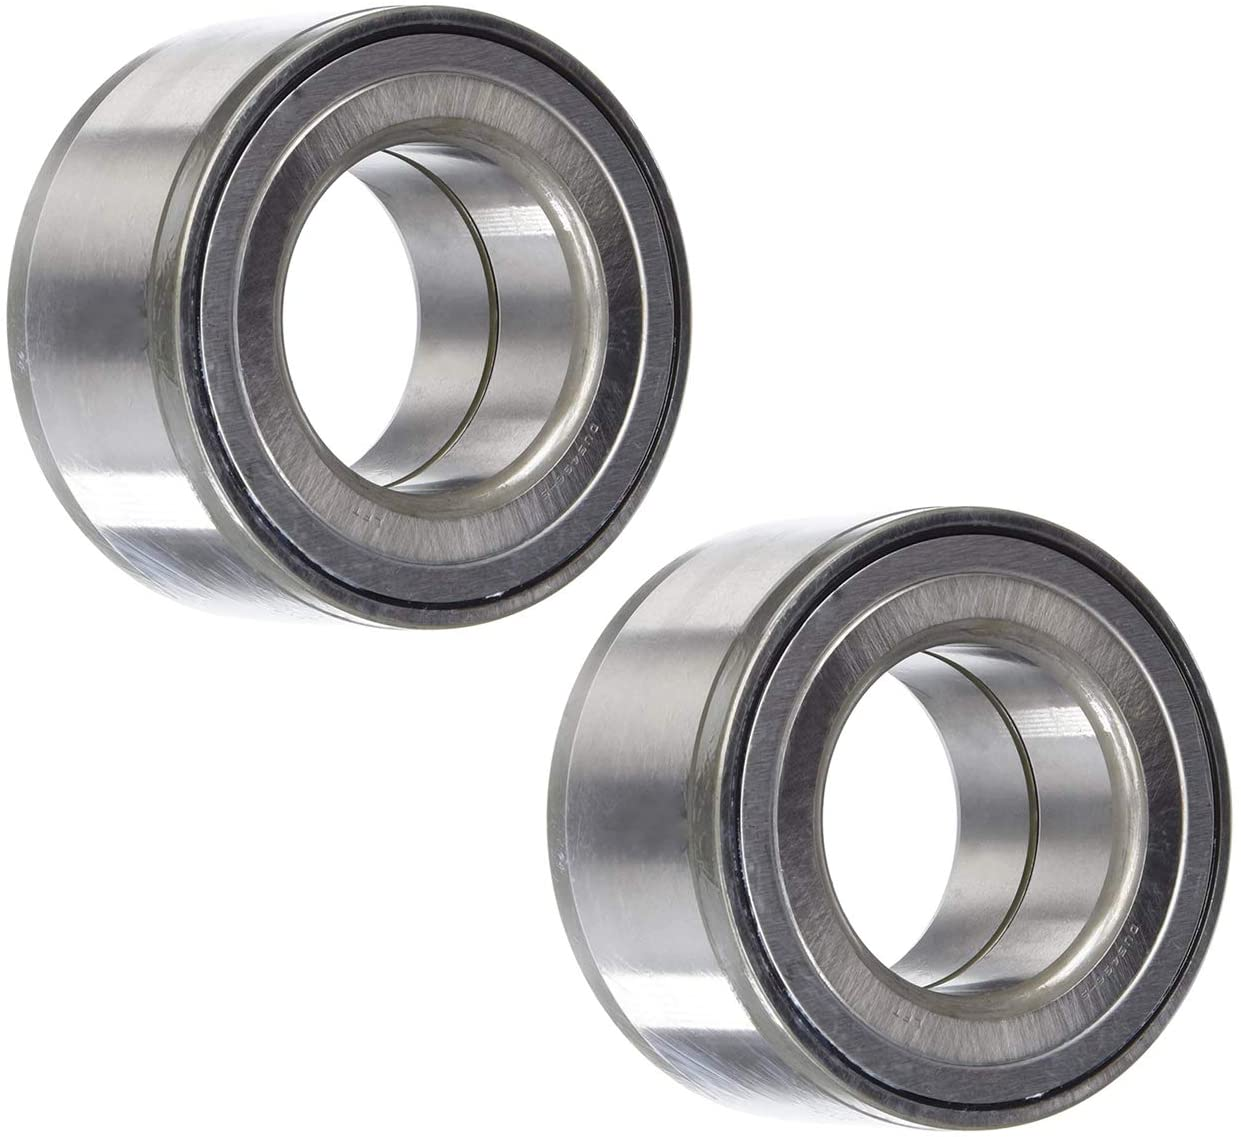 Bodeman - Pair 2 Front Wheel Bearing for 2001-2007 Toyota Sequoia/ 2000-2006 Tundra/ 1996-2002 4Runner/ 1995-2004 Tacoma